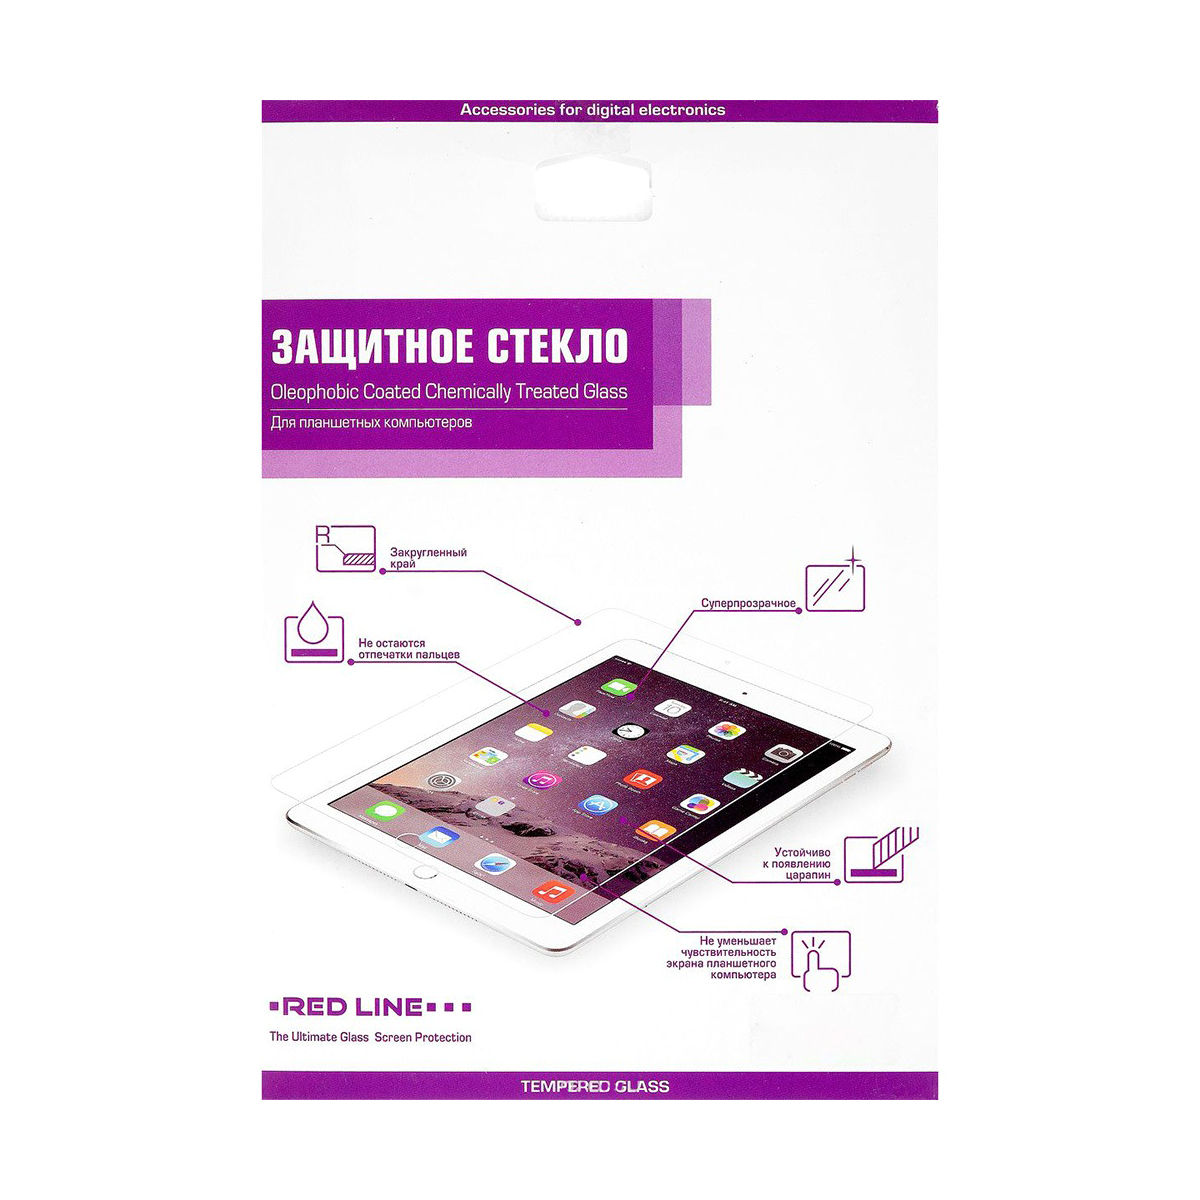 Защитное стекло Red Line Tempered Glass для iPad mini 4/iPad (2019)